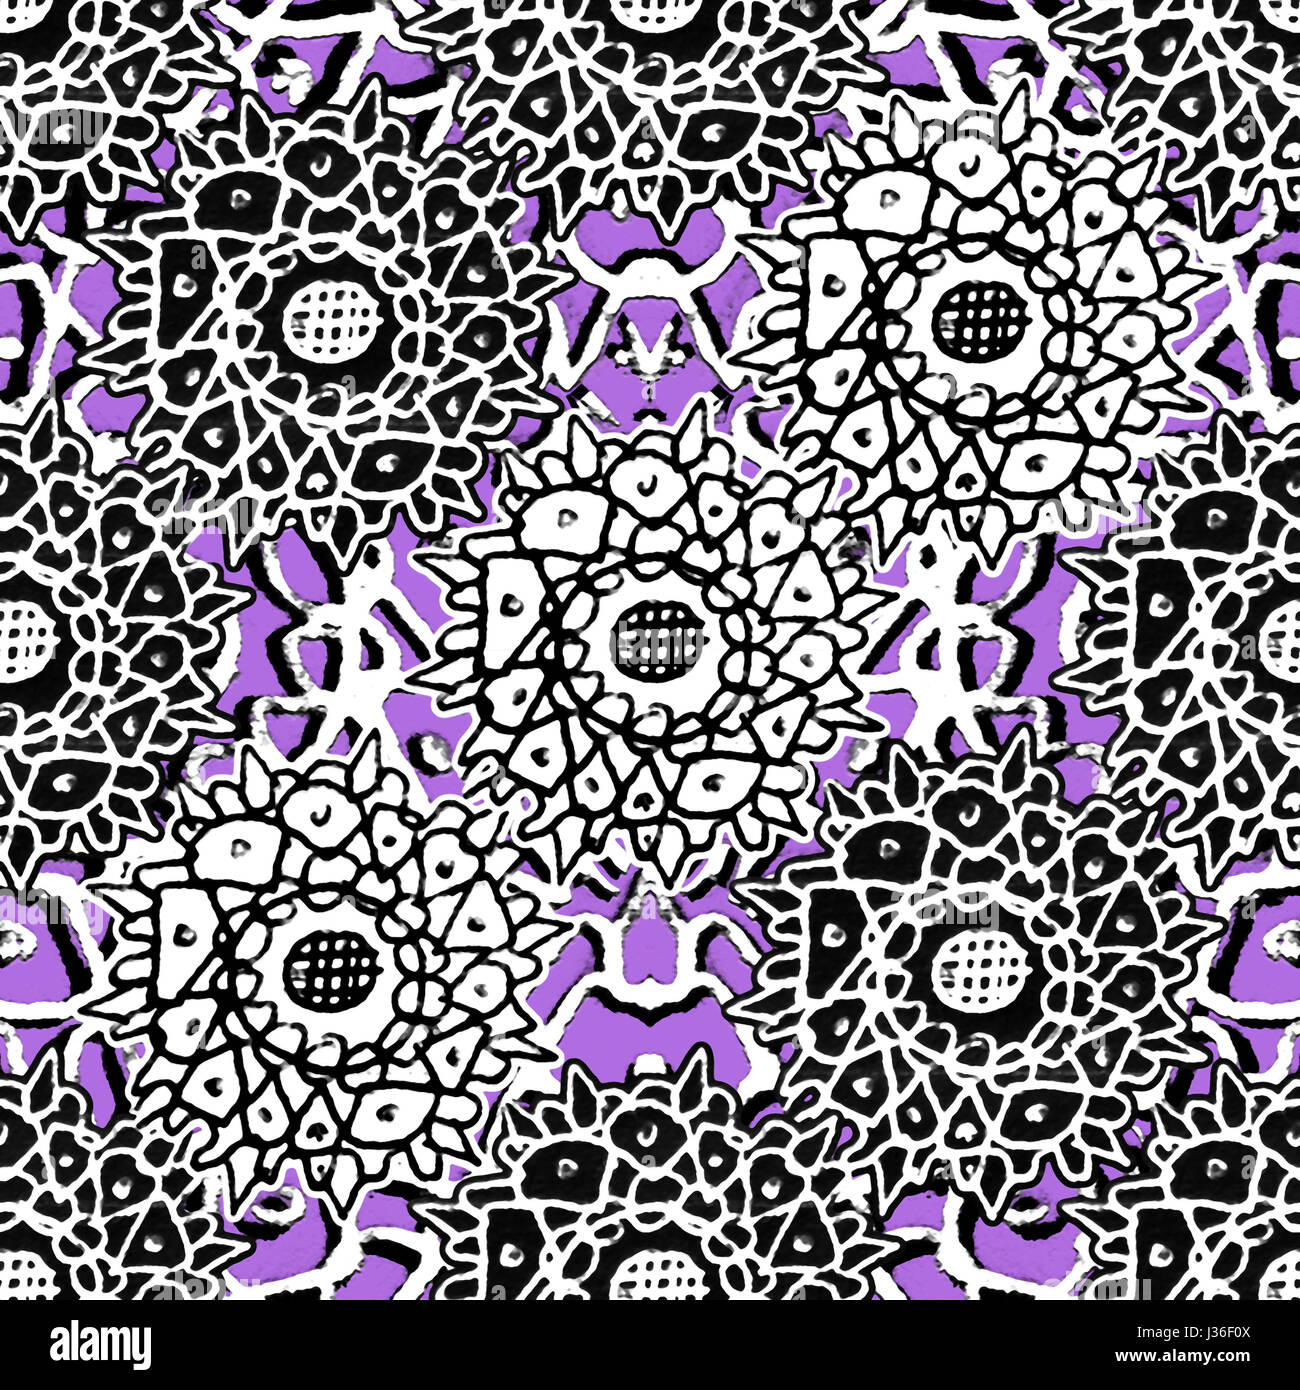 Mixed media collage technique stars motif hand draw graphic ornate seamless pattern design in violet, black and Stock Photo